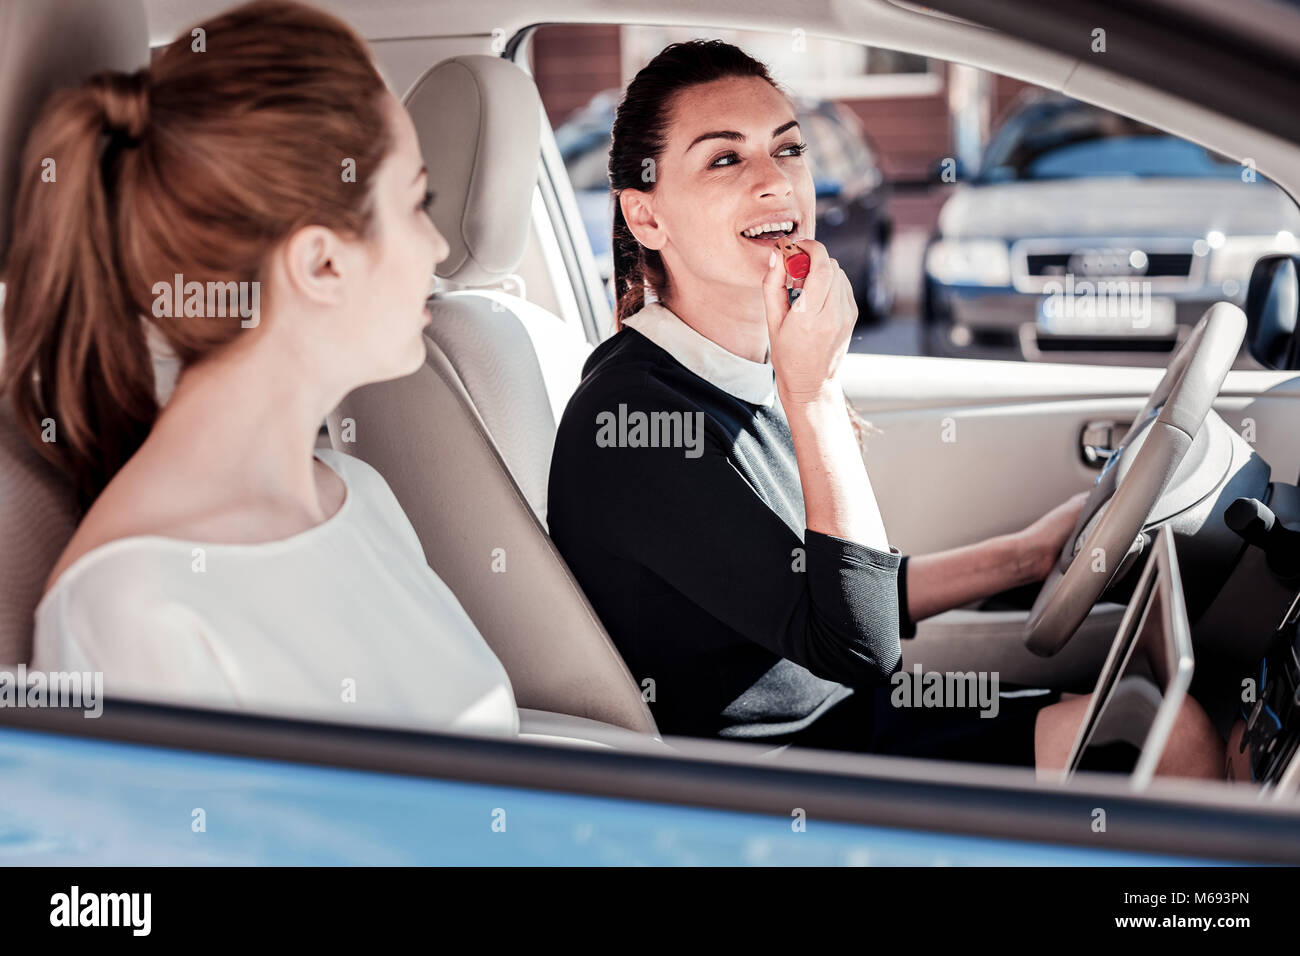 Stylish fashionable woman sitting in the car and sprucing. - Stock Image